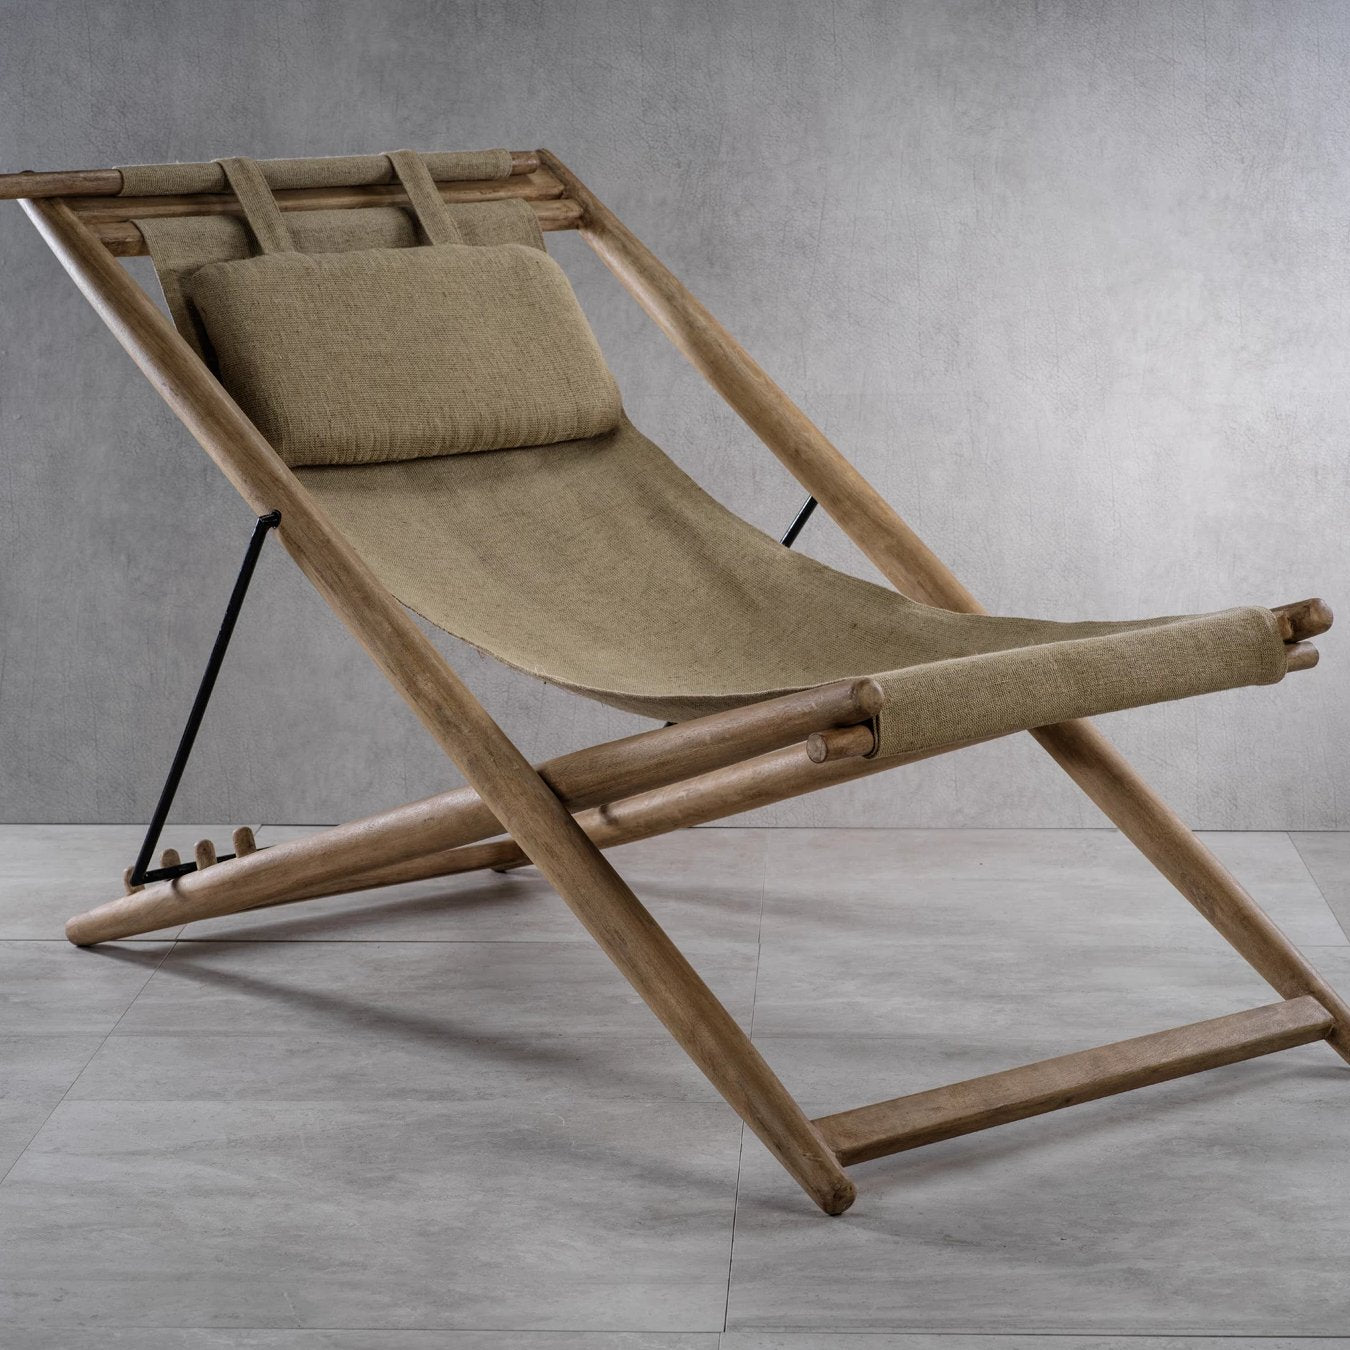 Sand River Mango Wood & Jute Chaise Lounge Chair - CARLYLE AVENUE